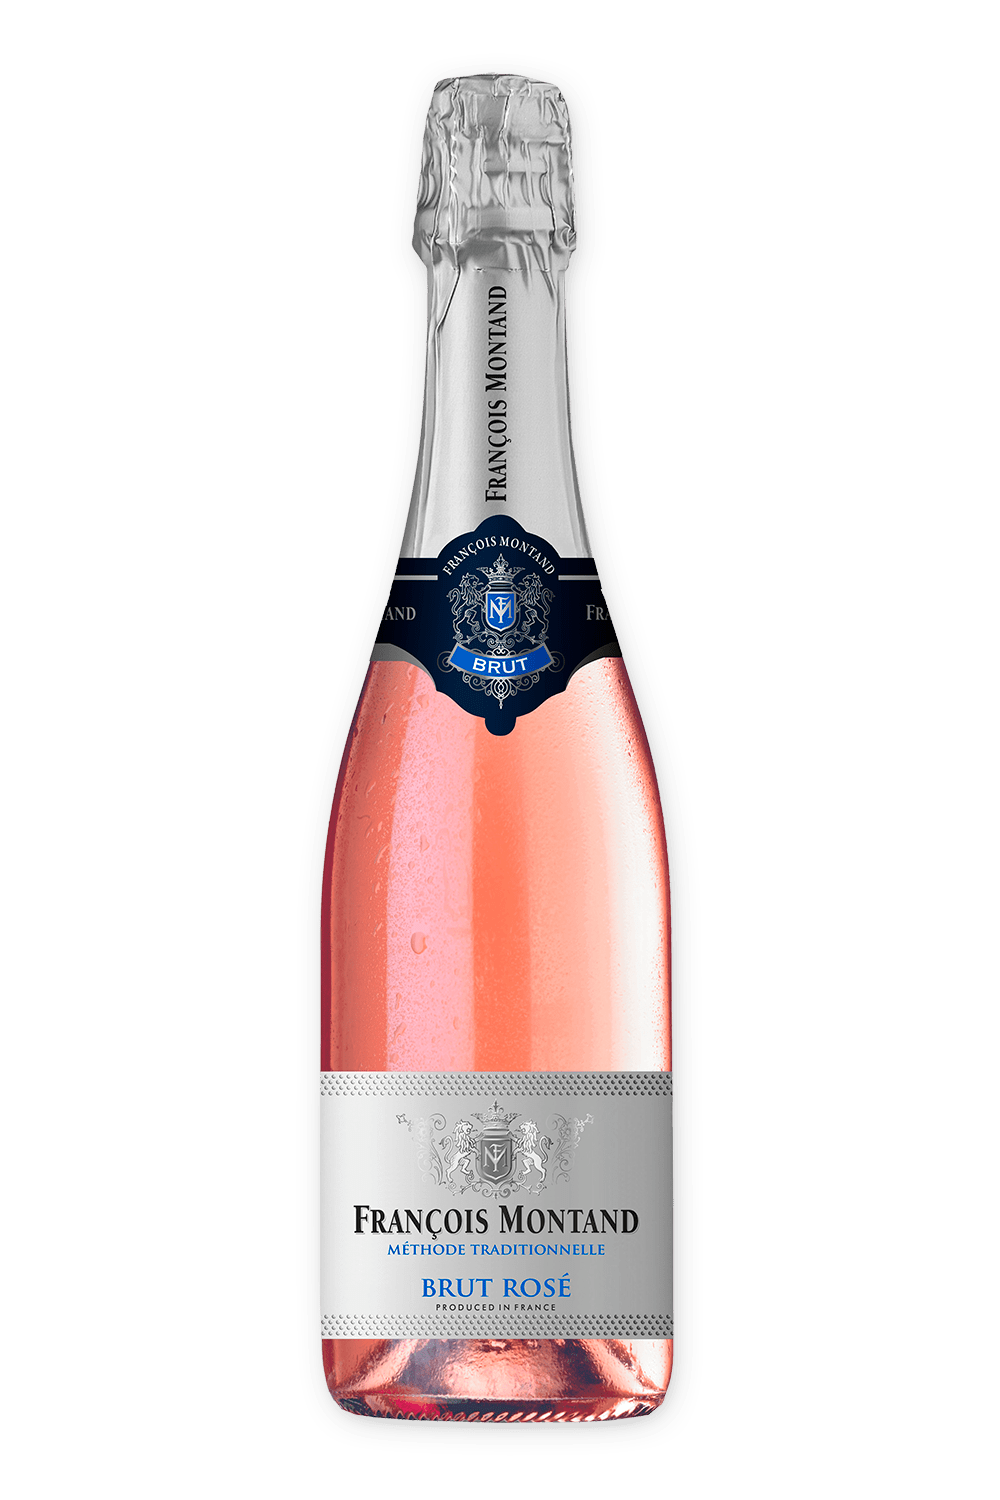 Francois-Montand-Blanc-De-Blancs-Methode-Traditionnelle-Brut-Rose